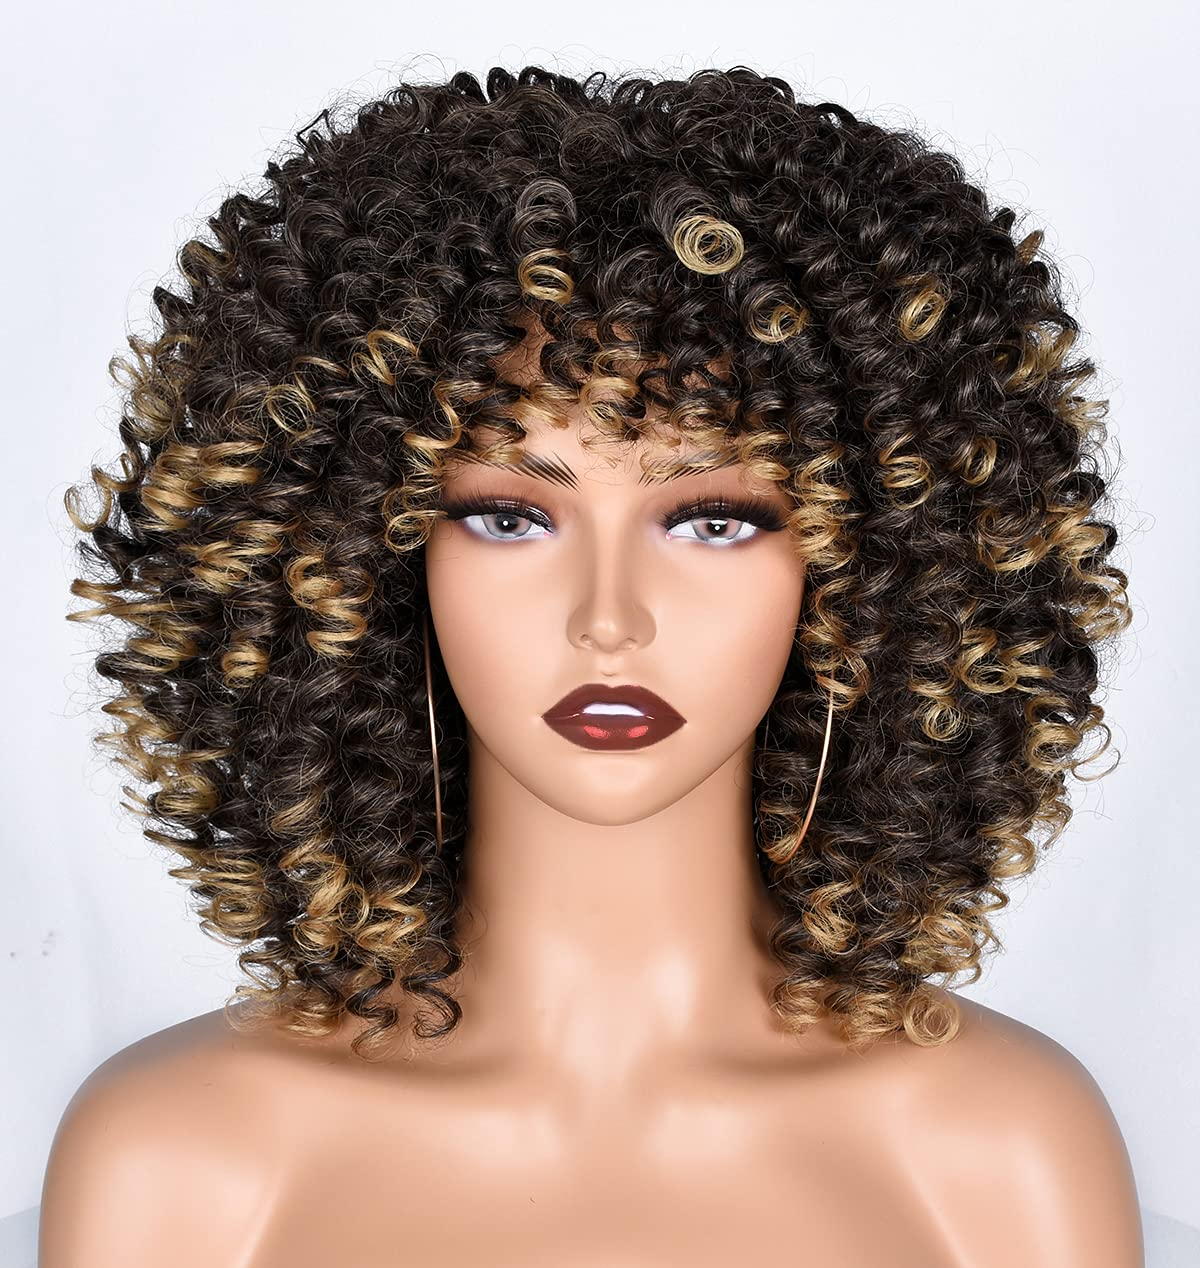 Amazon.com : Goodly Short Afro Wigs For Black Women Curly Wigs with Bangs Synthetic  Kinky Curly Hair Wig Full Wigs(1B/27) : Beauty & Personal Care